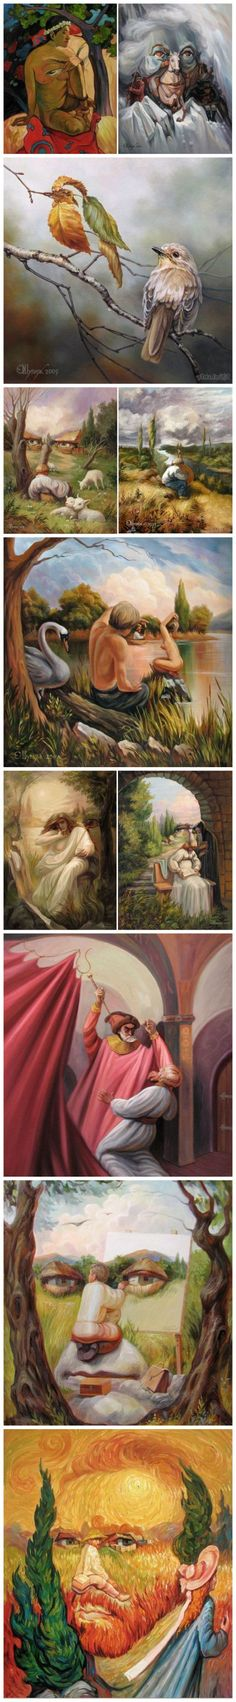 """Picture in Picture, Among the People"" from Ukrainian artist Oleg Shuplyak - THIS DEFINITELY GOES WAY BEYOND THE IMAGINATION OF MOST!! IT IS SIMPLY AMAZING, OUI!! ✳✳✳"